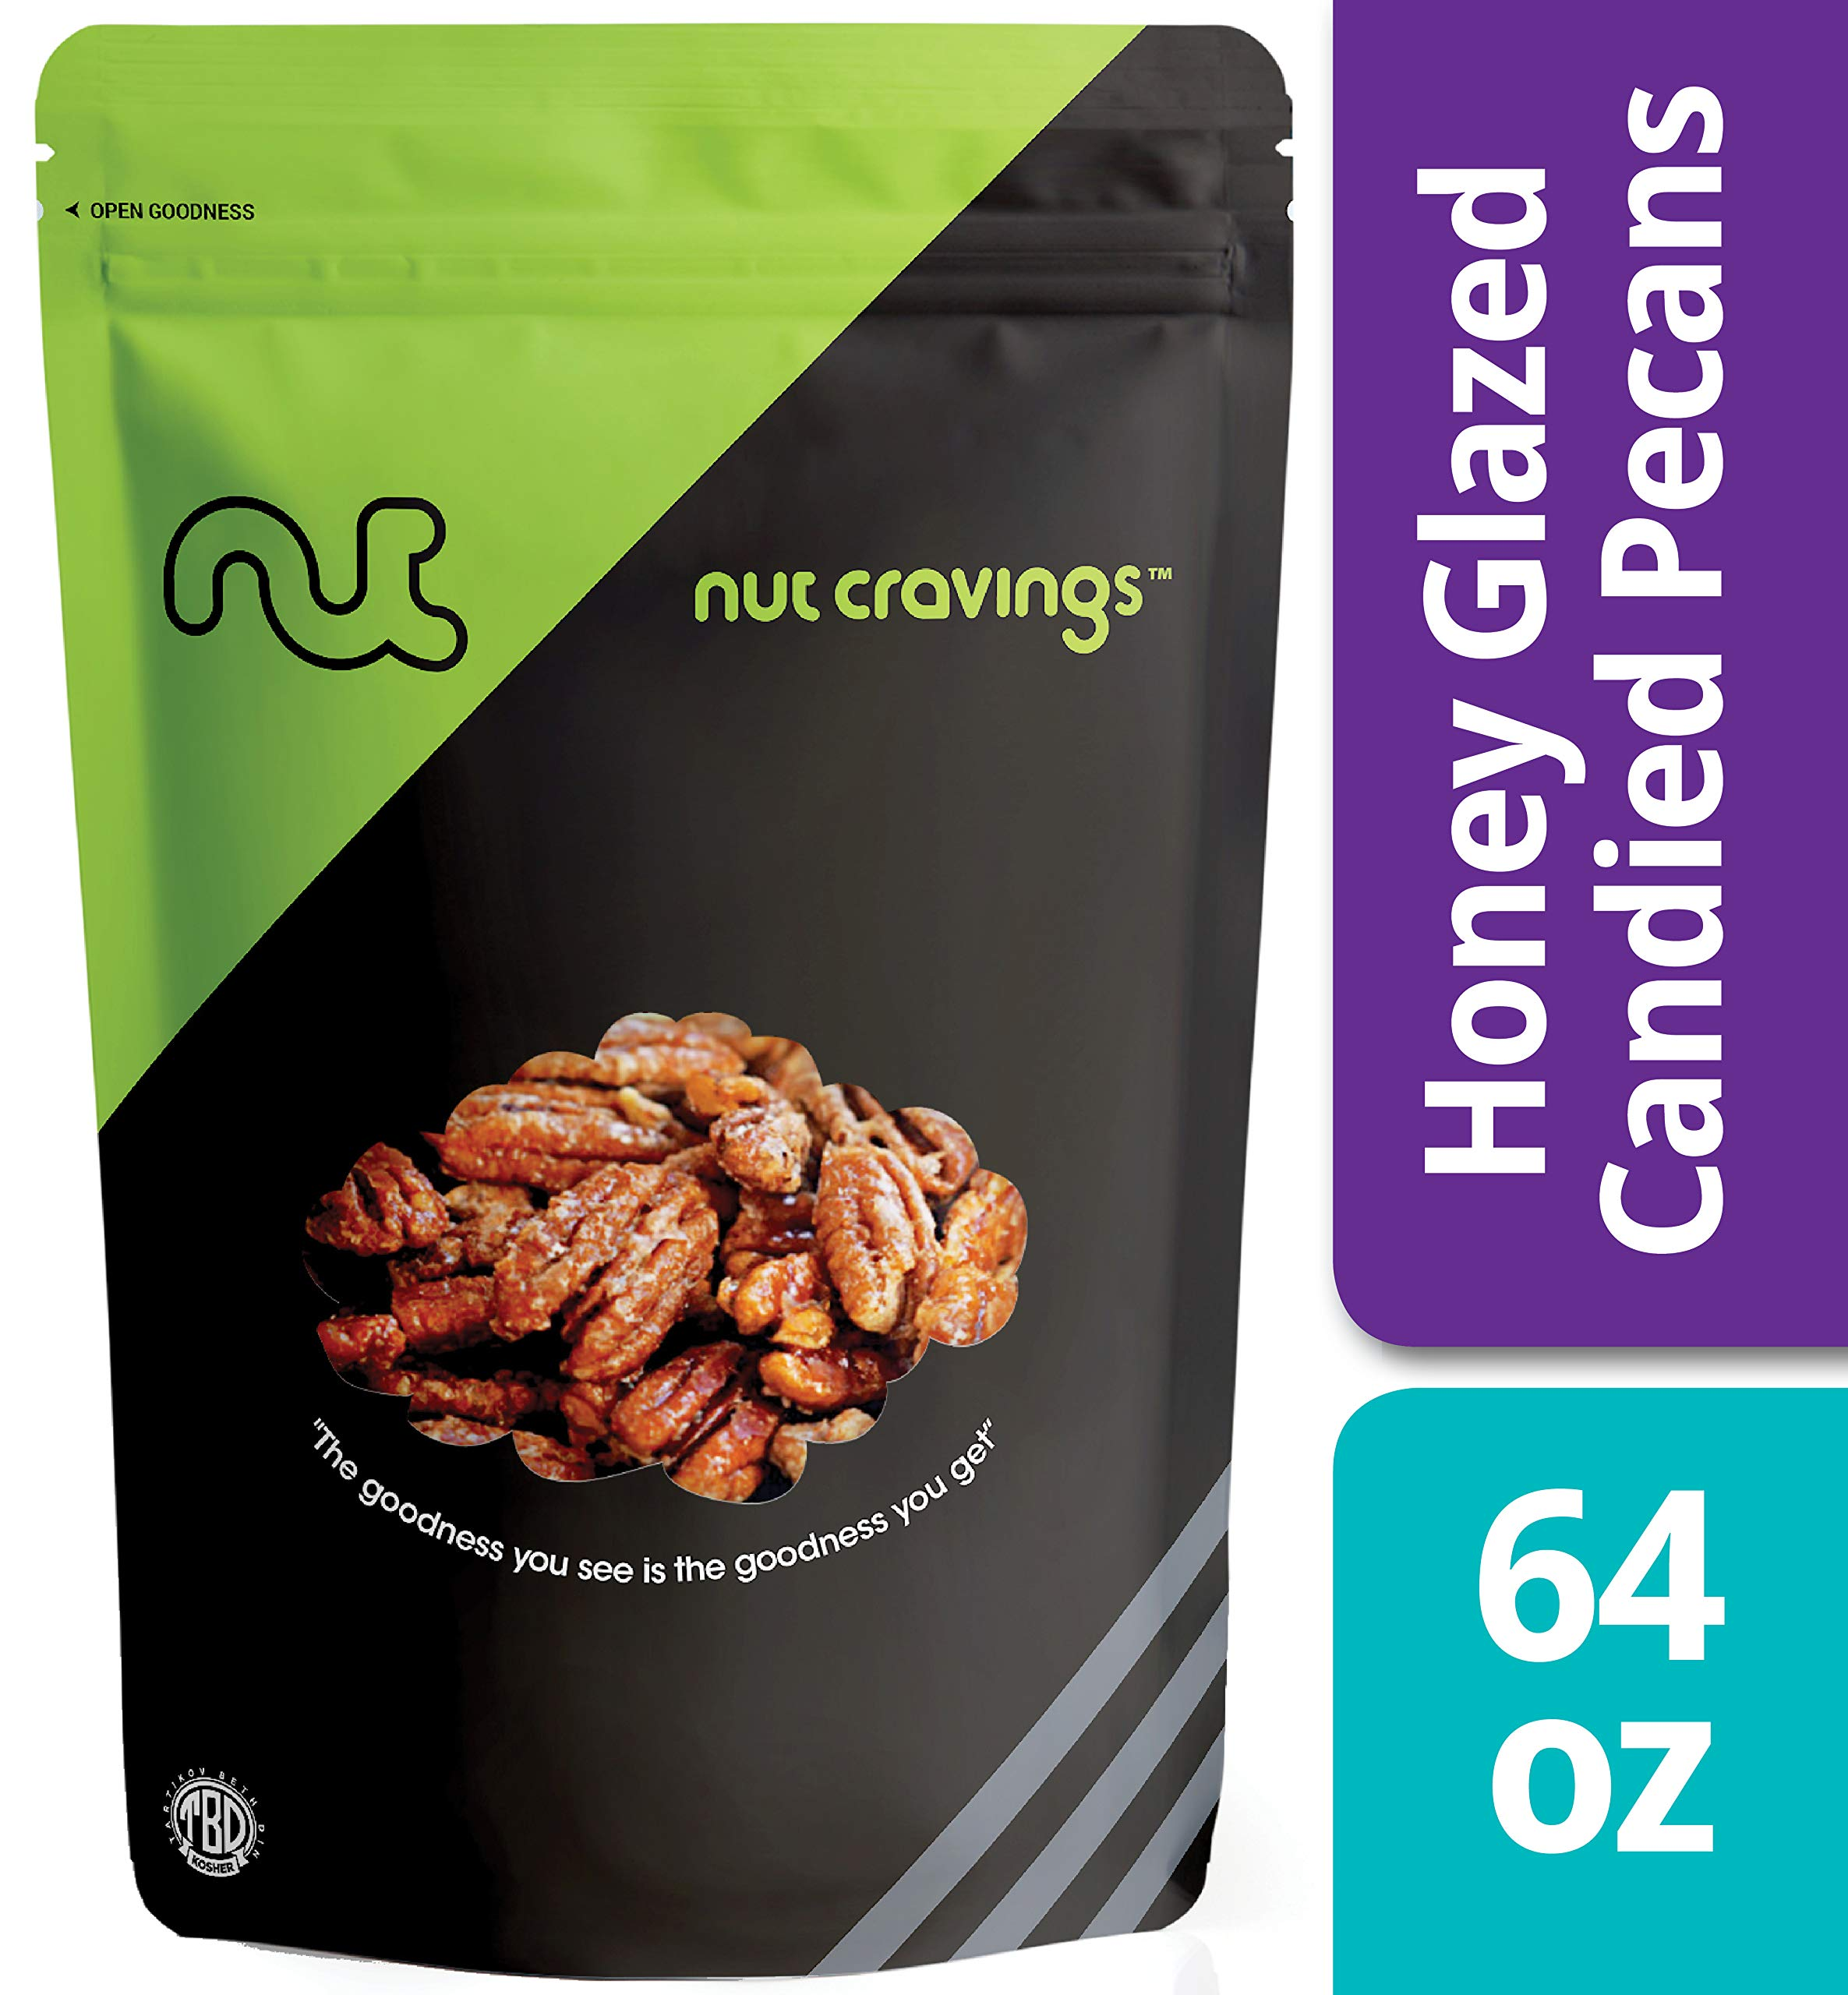 Nut Cravings - Fresh Honey Glazed Candied Pecans (4 Pounds) - In Resealable Bag - 64 Ounce